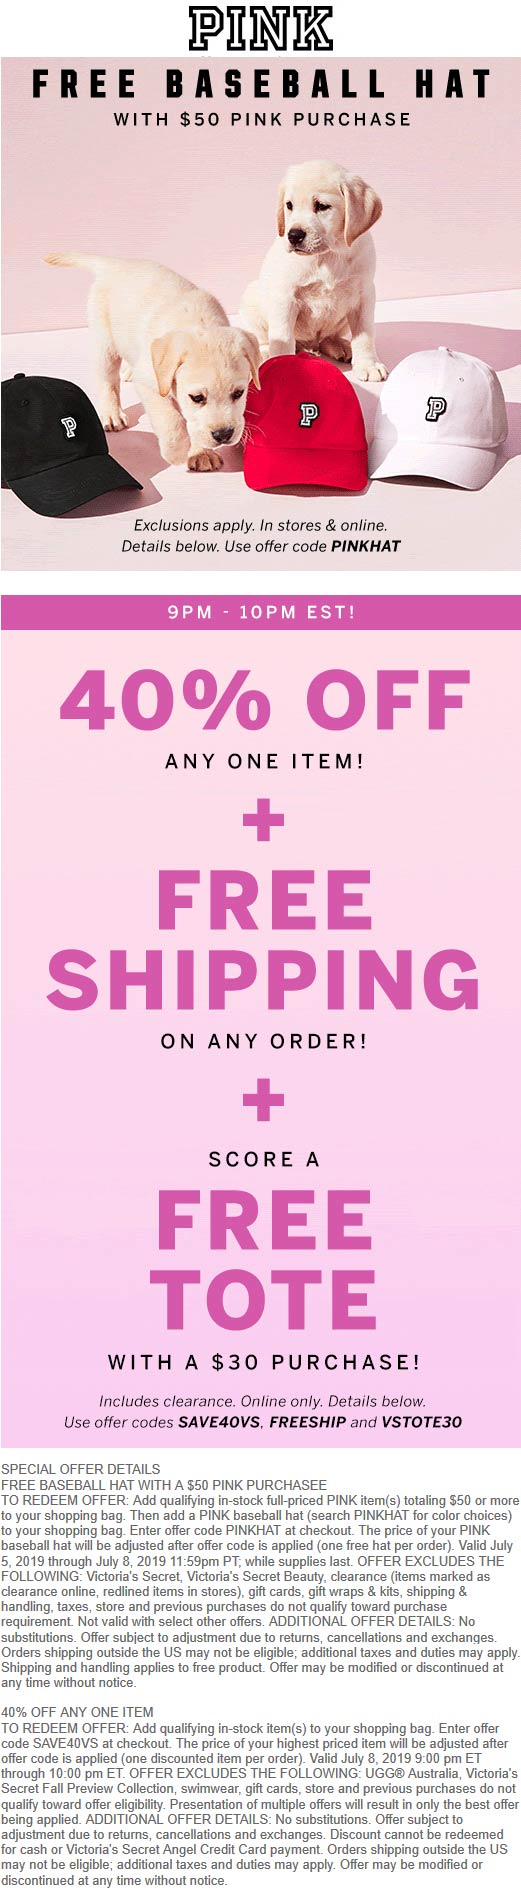 VictoriasSecret.com Promo Coupon Free hat at Victorias Secret PINK, also online + 40% off a single item tonight via promo PINKHAT